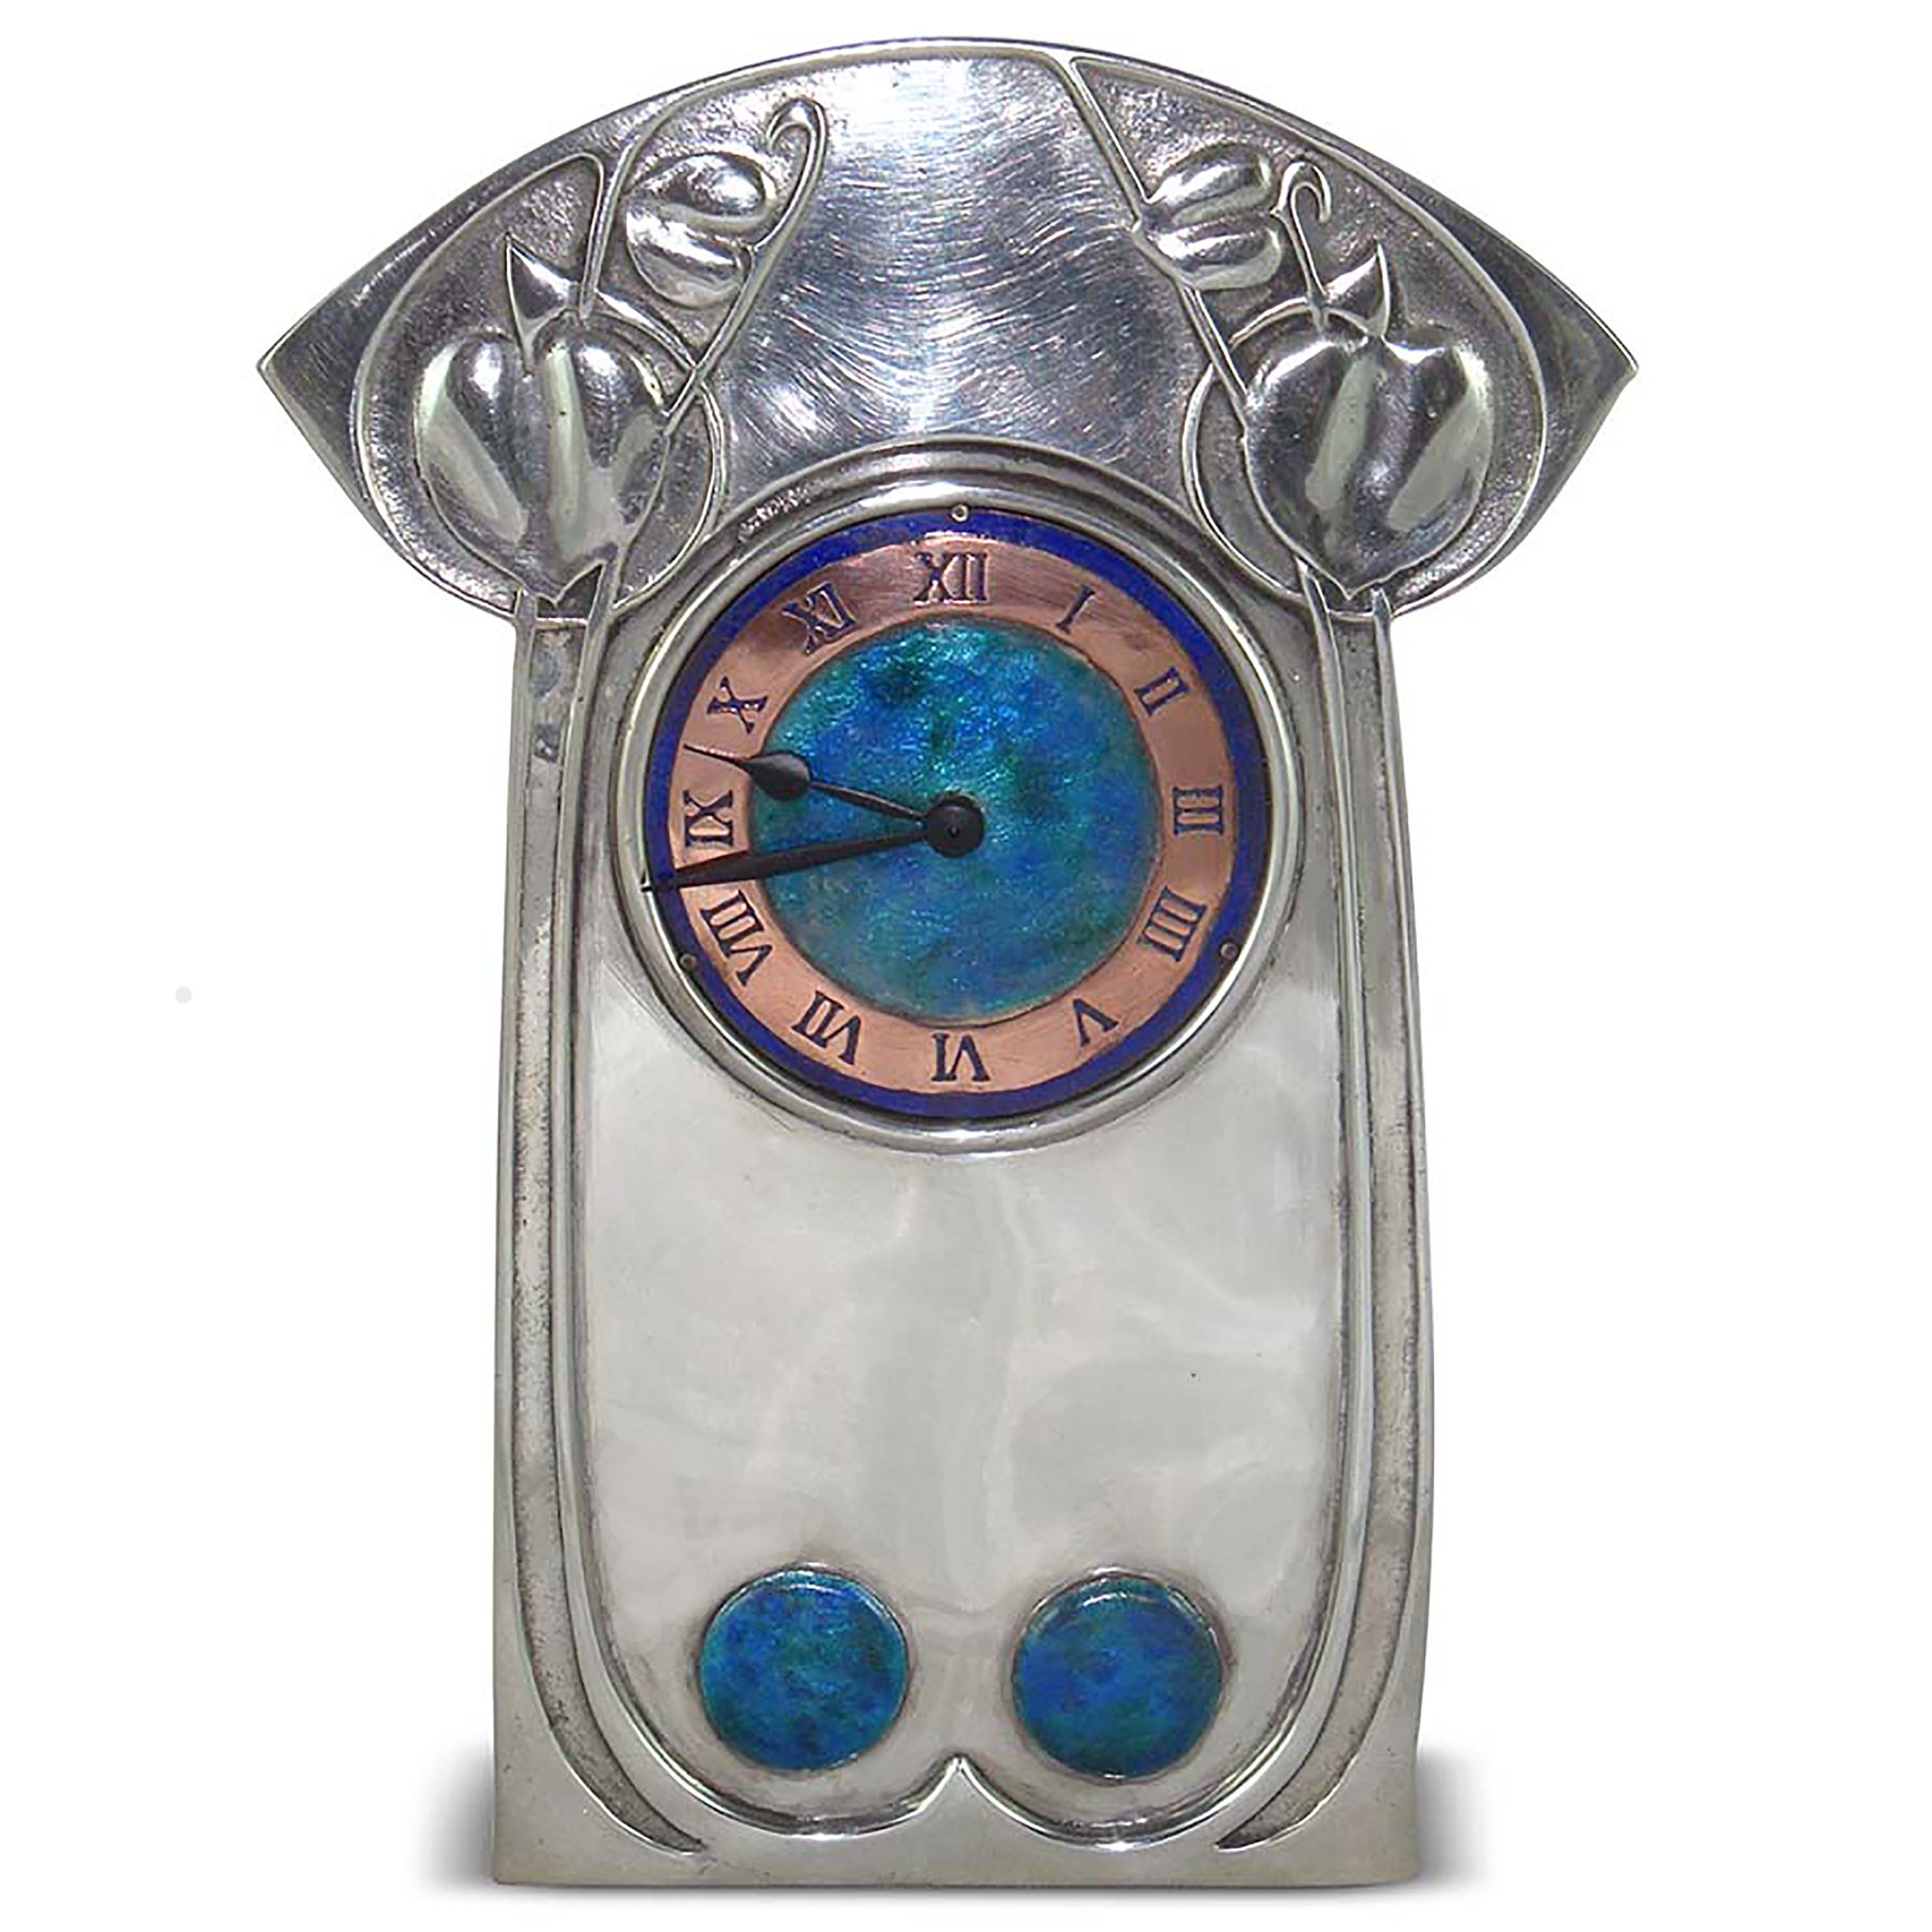 Antiques News - Antique Fair - Morgan Strickland Decorative Arts - Tudric pewter and enamel clock by Archibald Knox for Liberty & Co, c1902, £5,950.